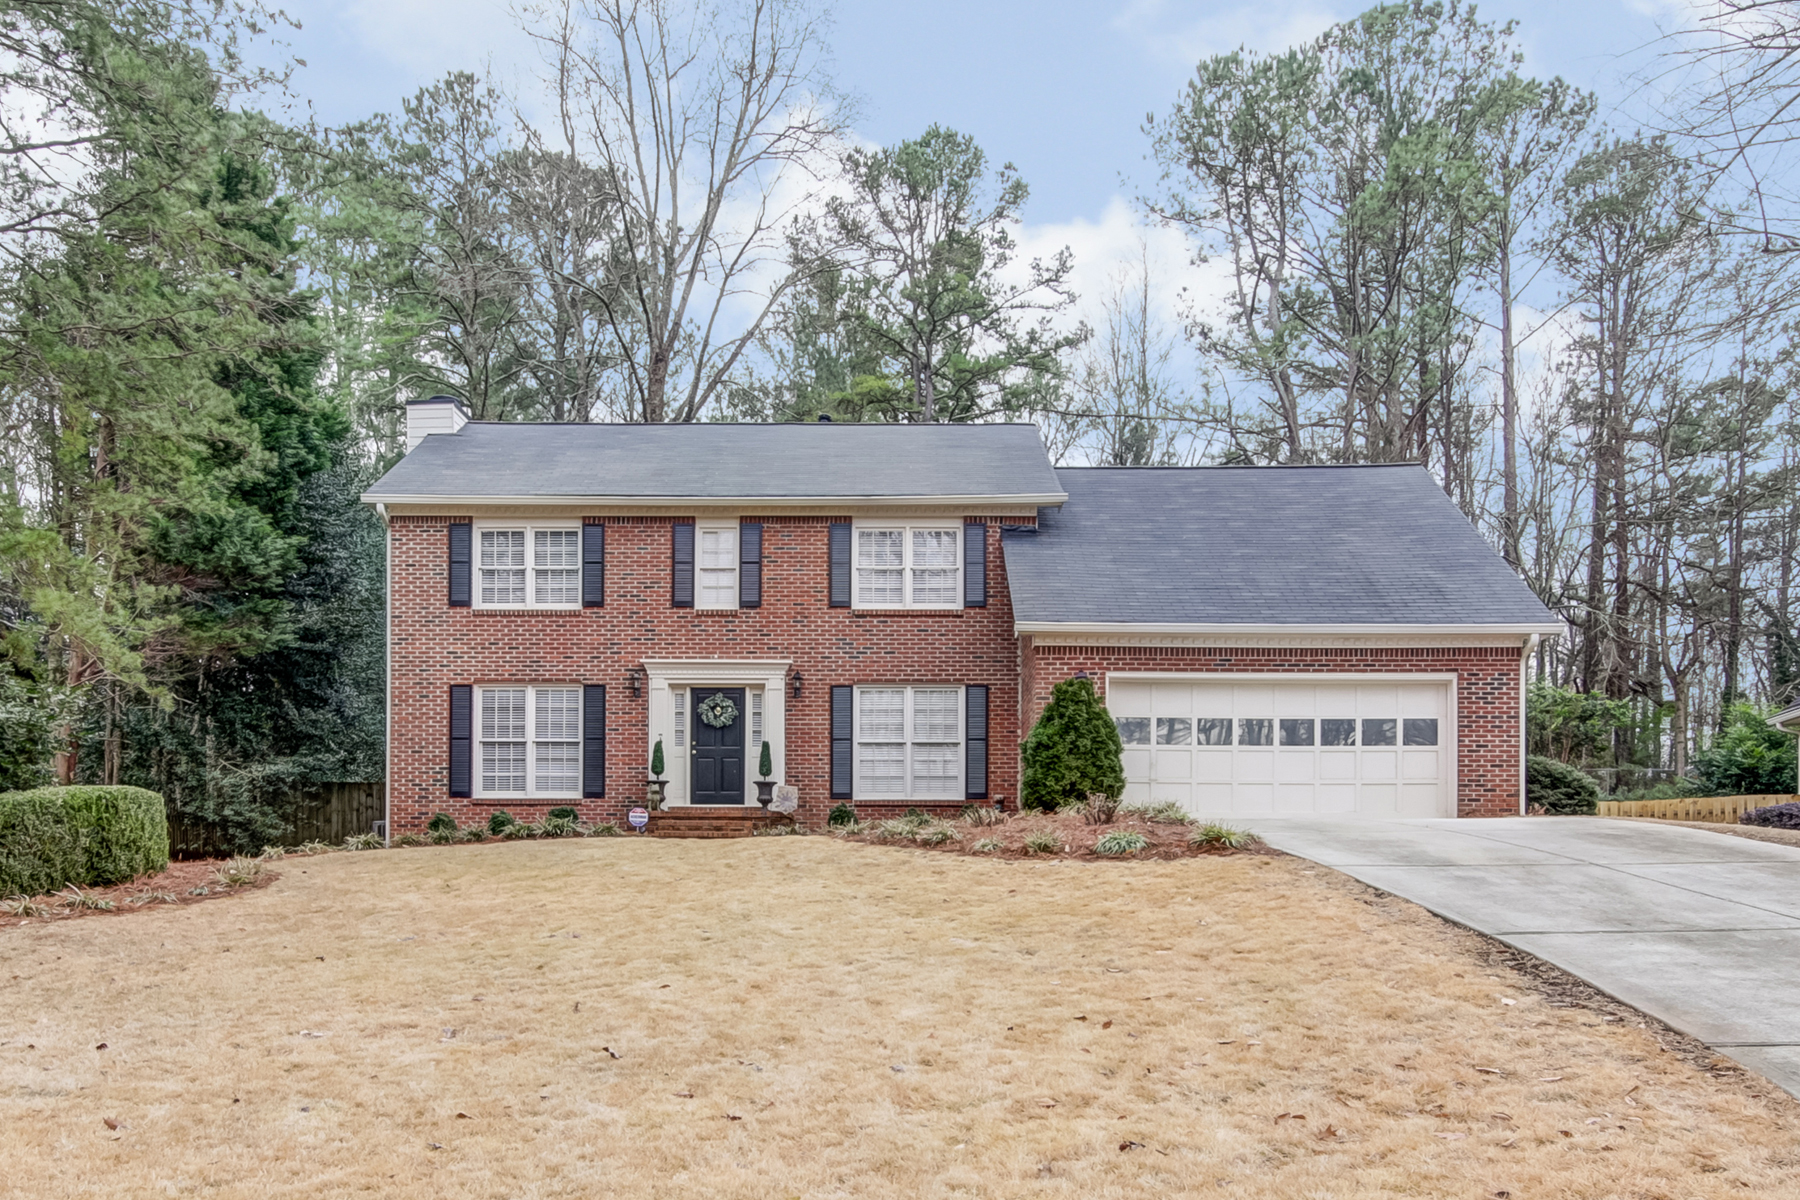 Single Family Home for Sale at Charming Home In Incredible Location 8520 Birch Hollow Drive Roswell, Georgia 30076 United States